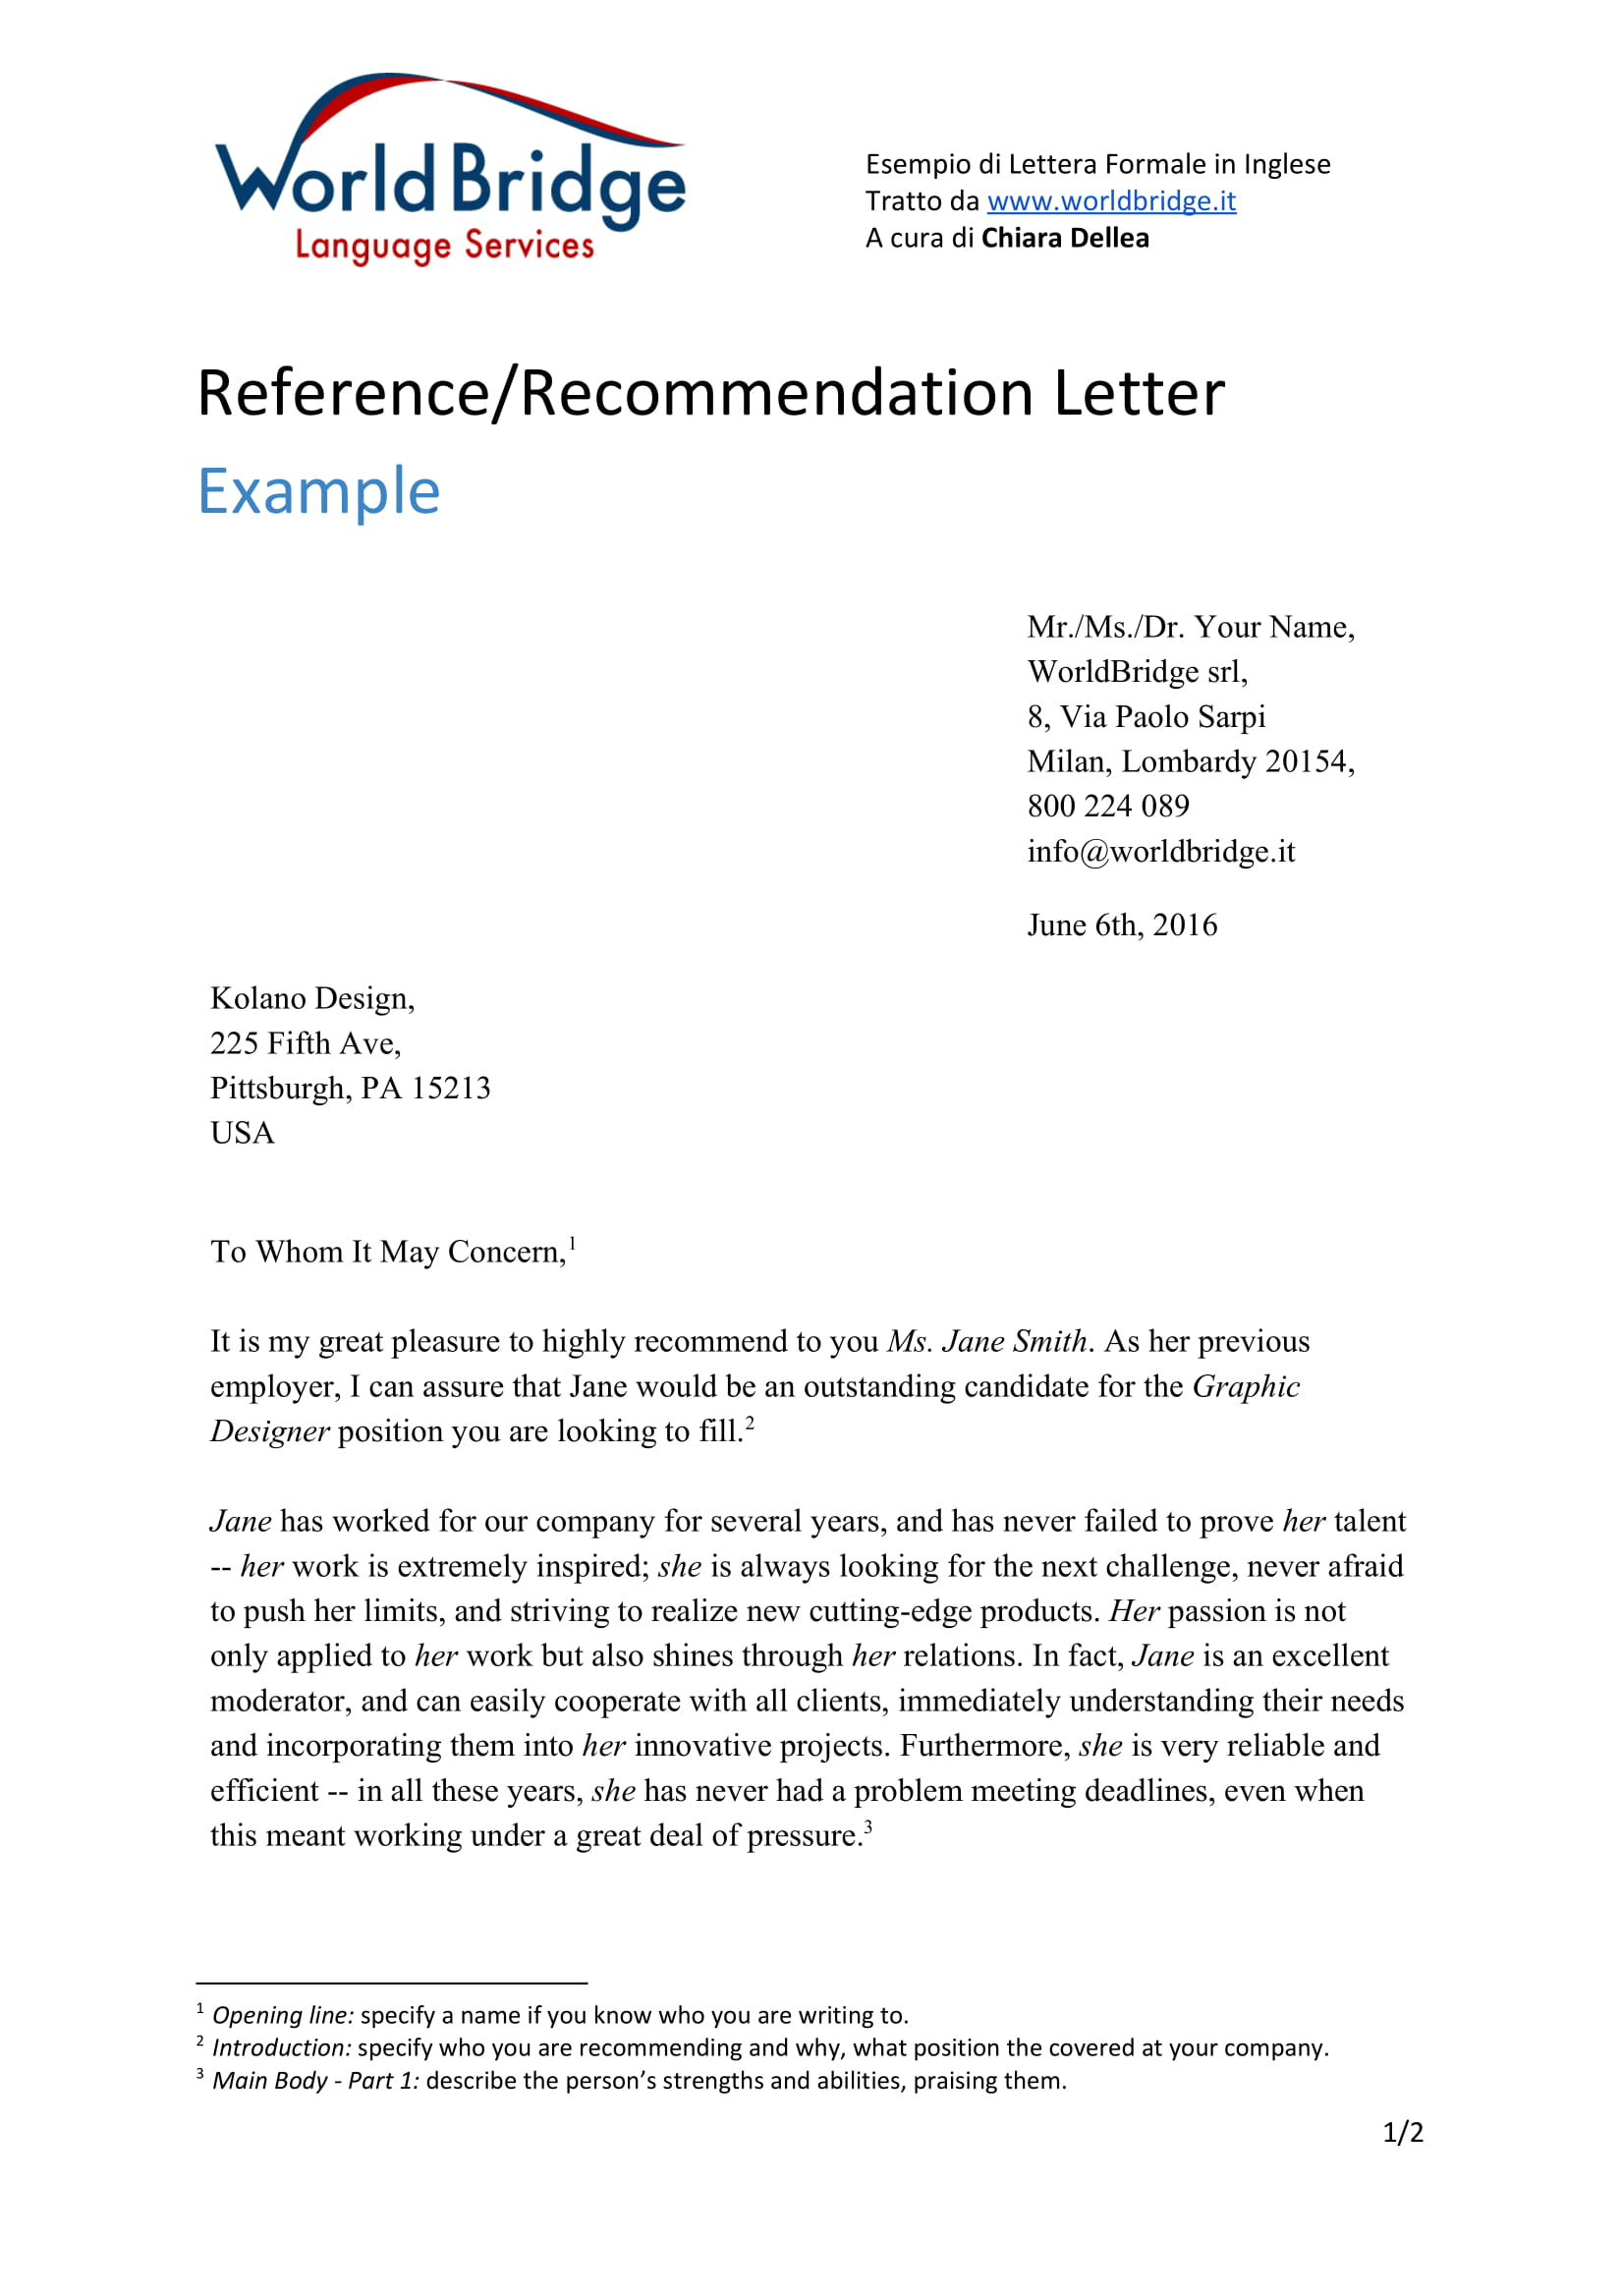 reference letter from a previous employer example 1